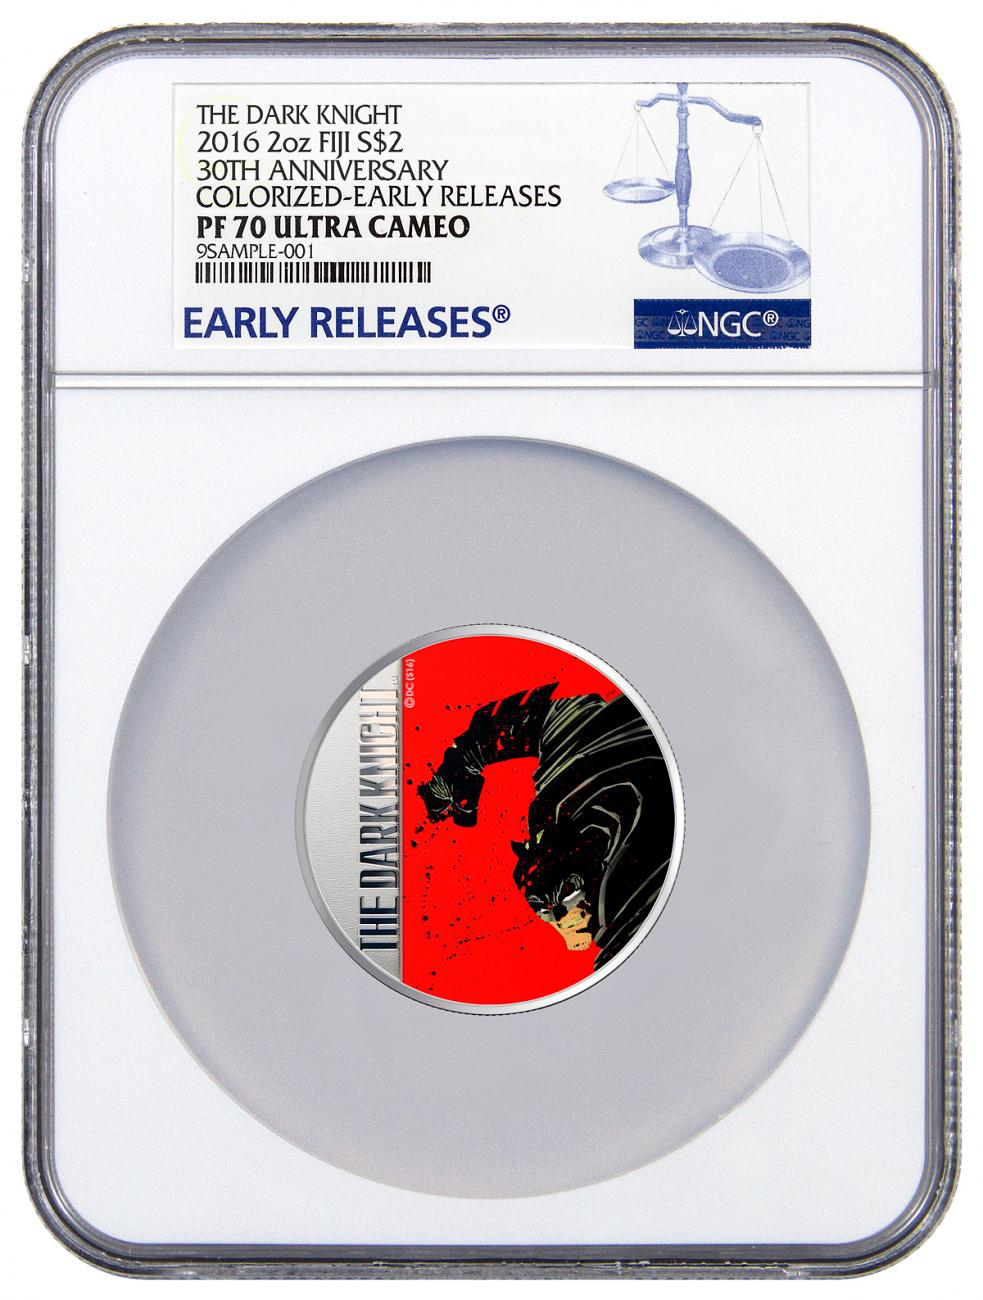 2016 Fiji $2 2 oz. Colorized Proof Silver Batman: The Dark Knight Returns - 30th Anniversary - NGC PF70 UC Early Releases